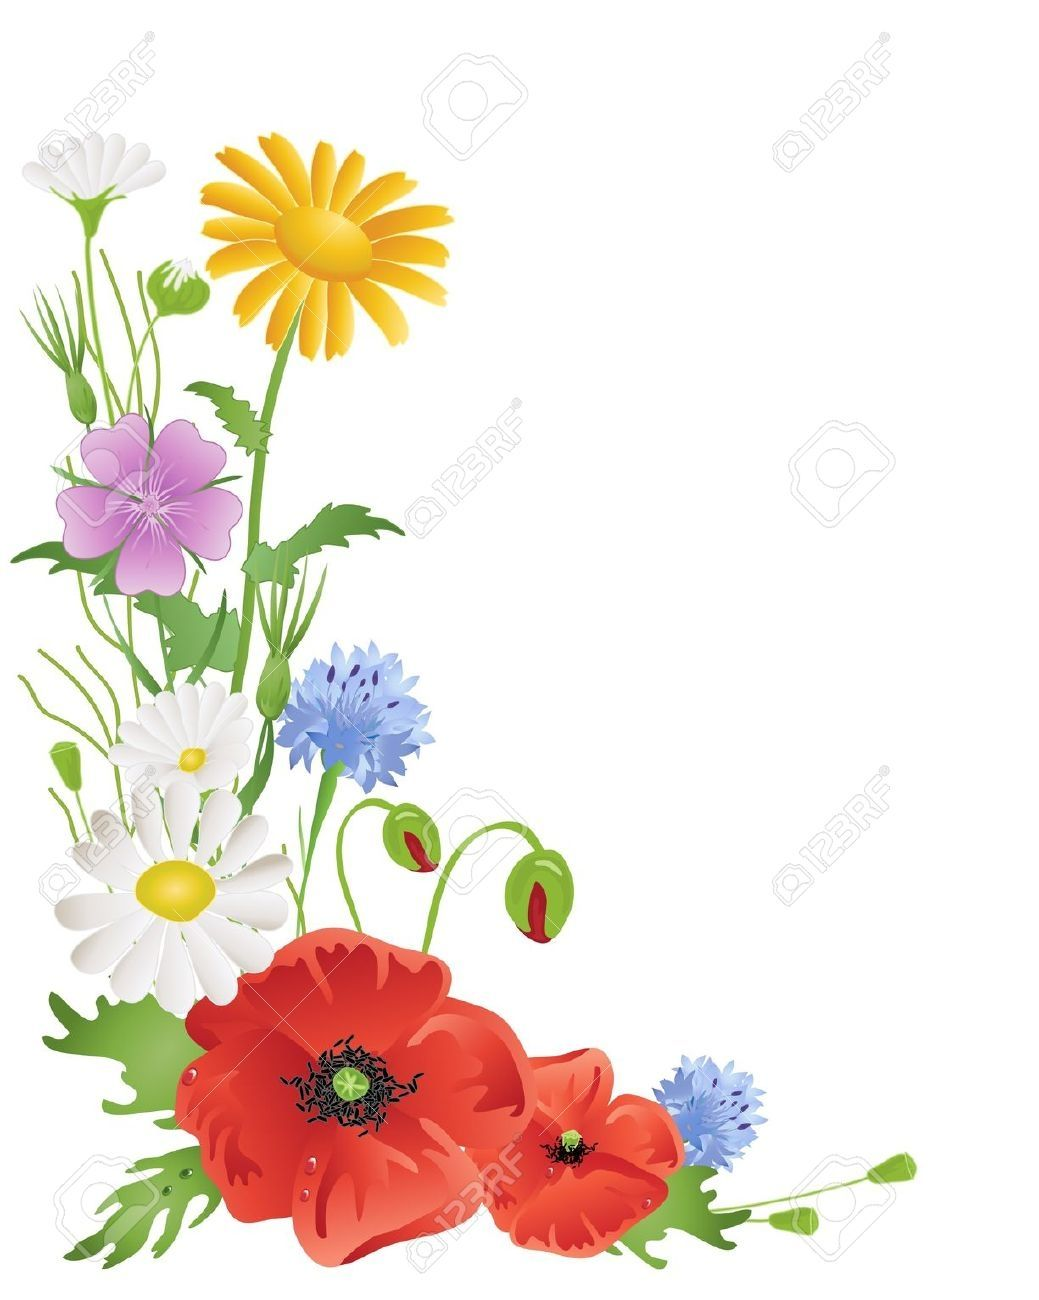 Meadow flower clipart clipart free drawings of a bunch of wild flowers   Wildflowers Borders ... clipart free